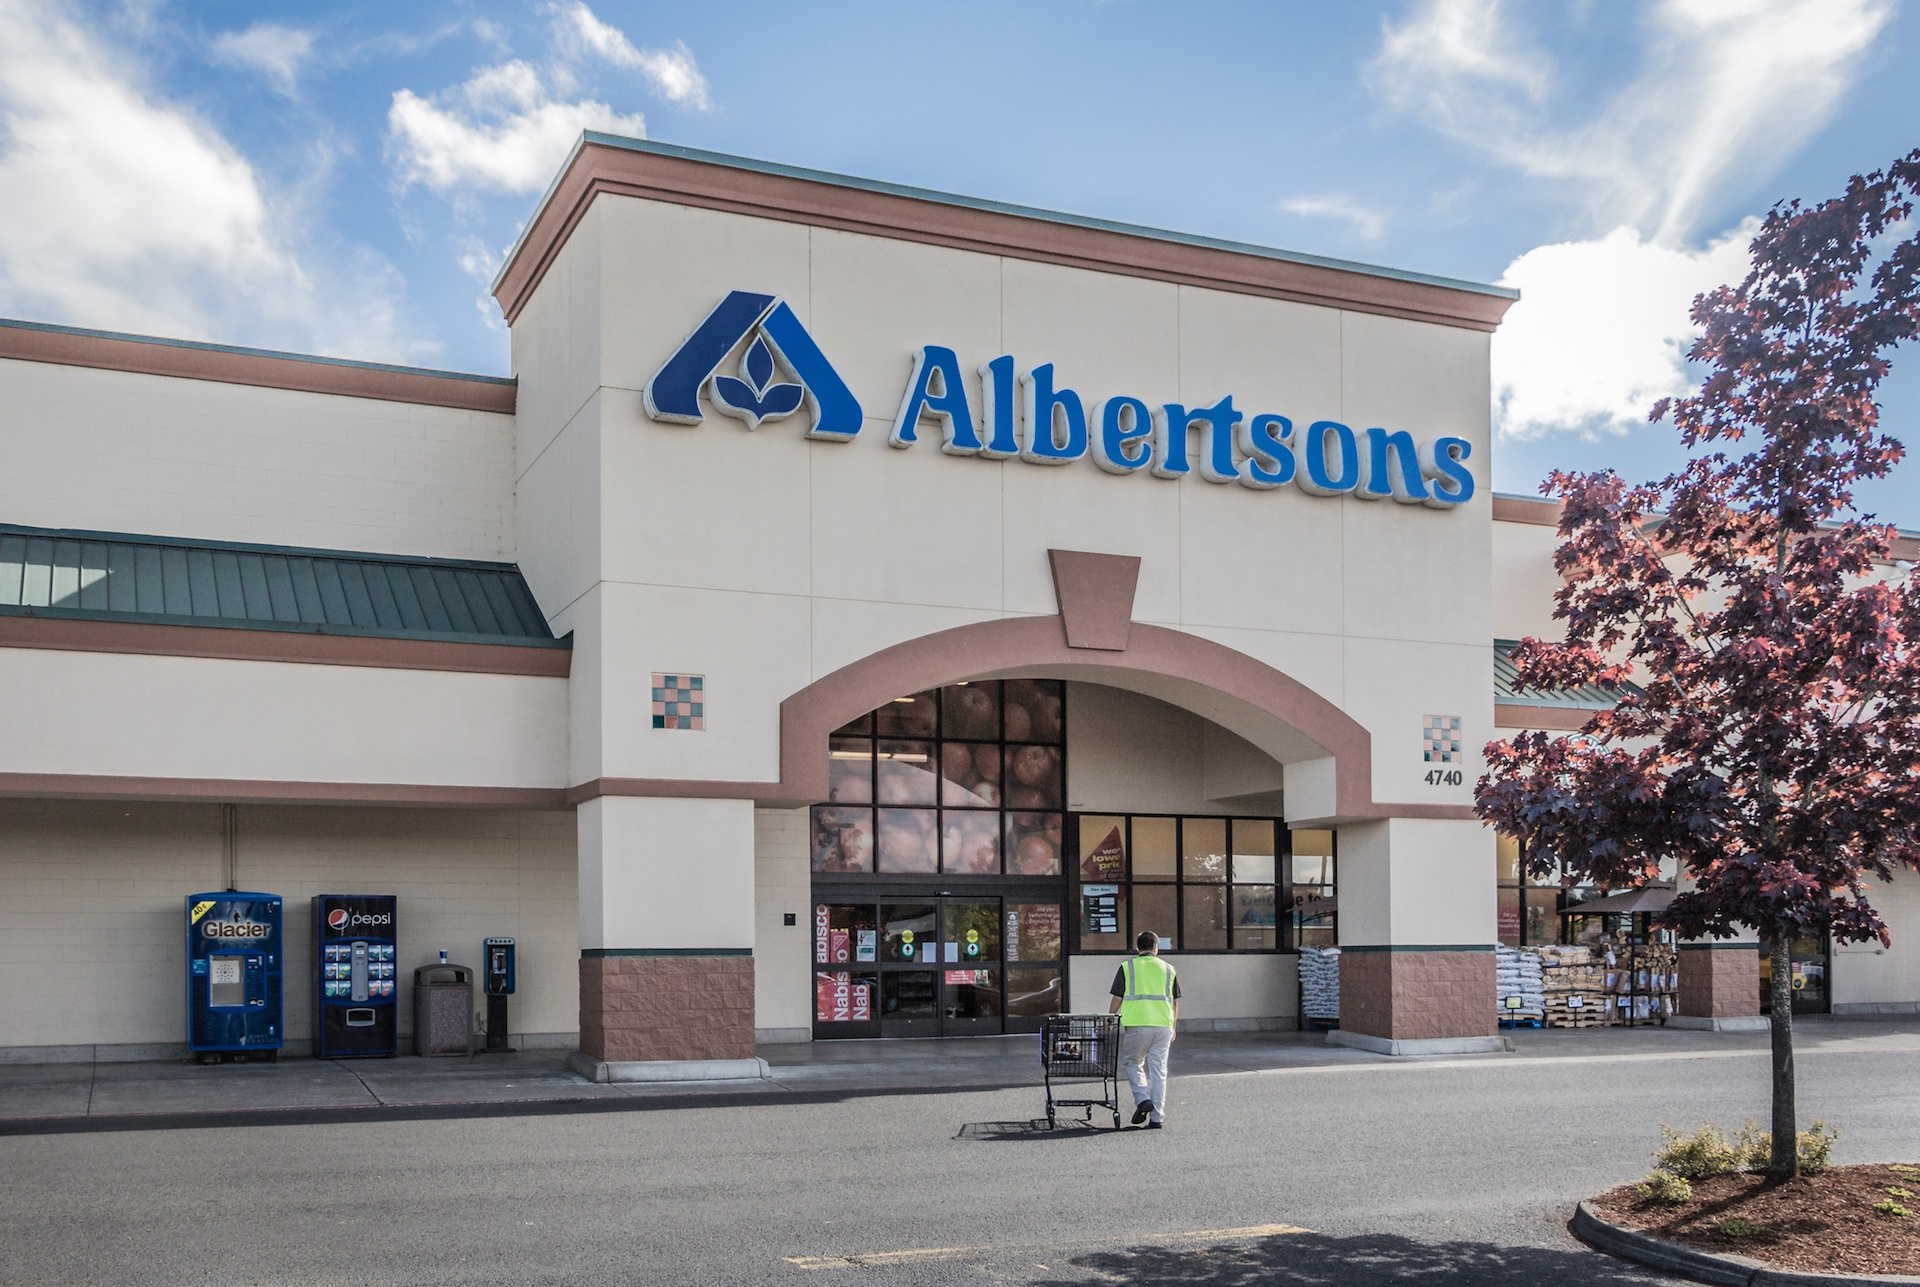 Amazon is common rival of Albertsons and Walmart